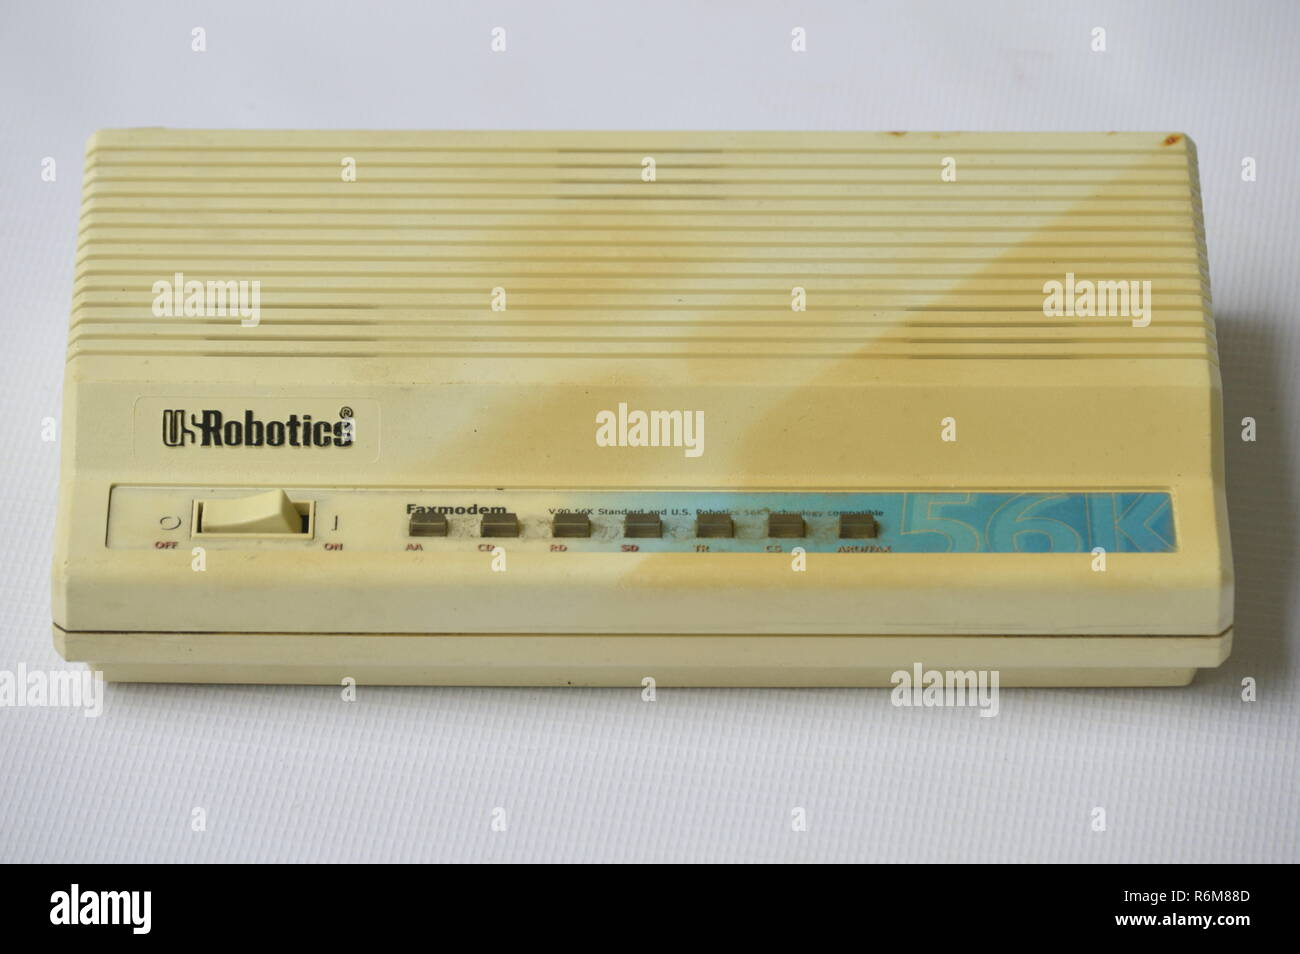 Vintage Internet Device Us Robotics Modem Stock Photo 227868269